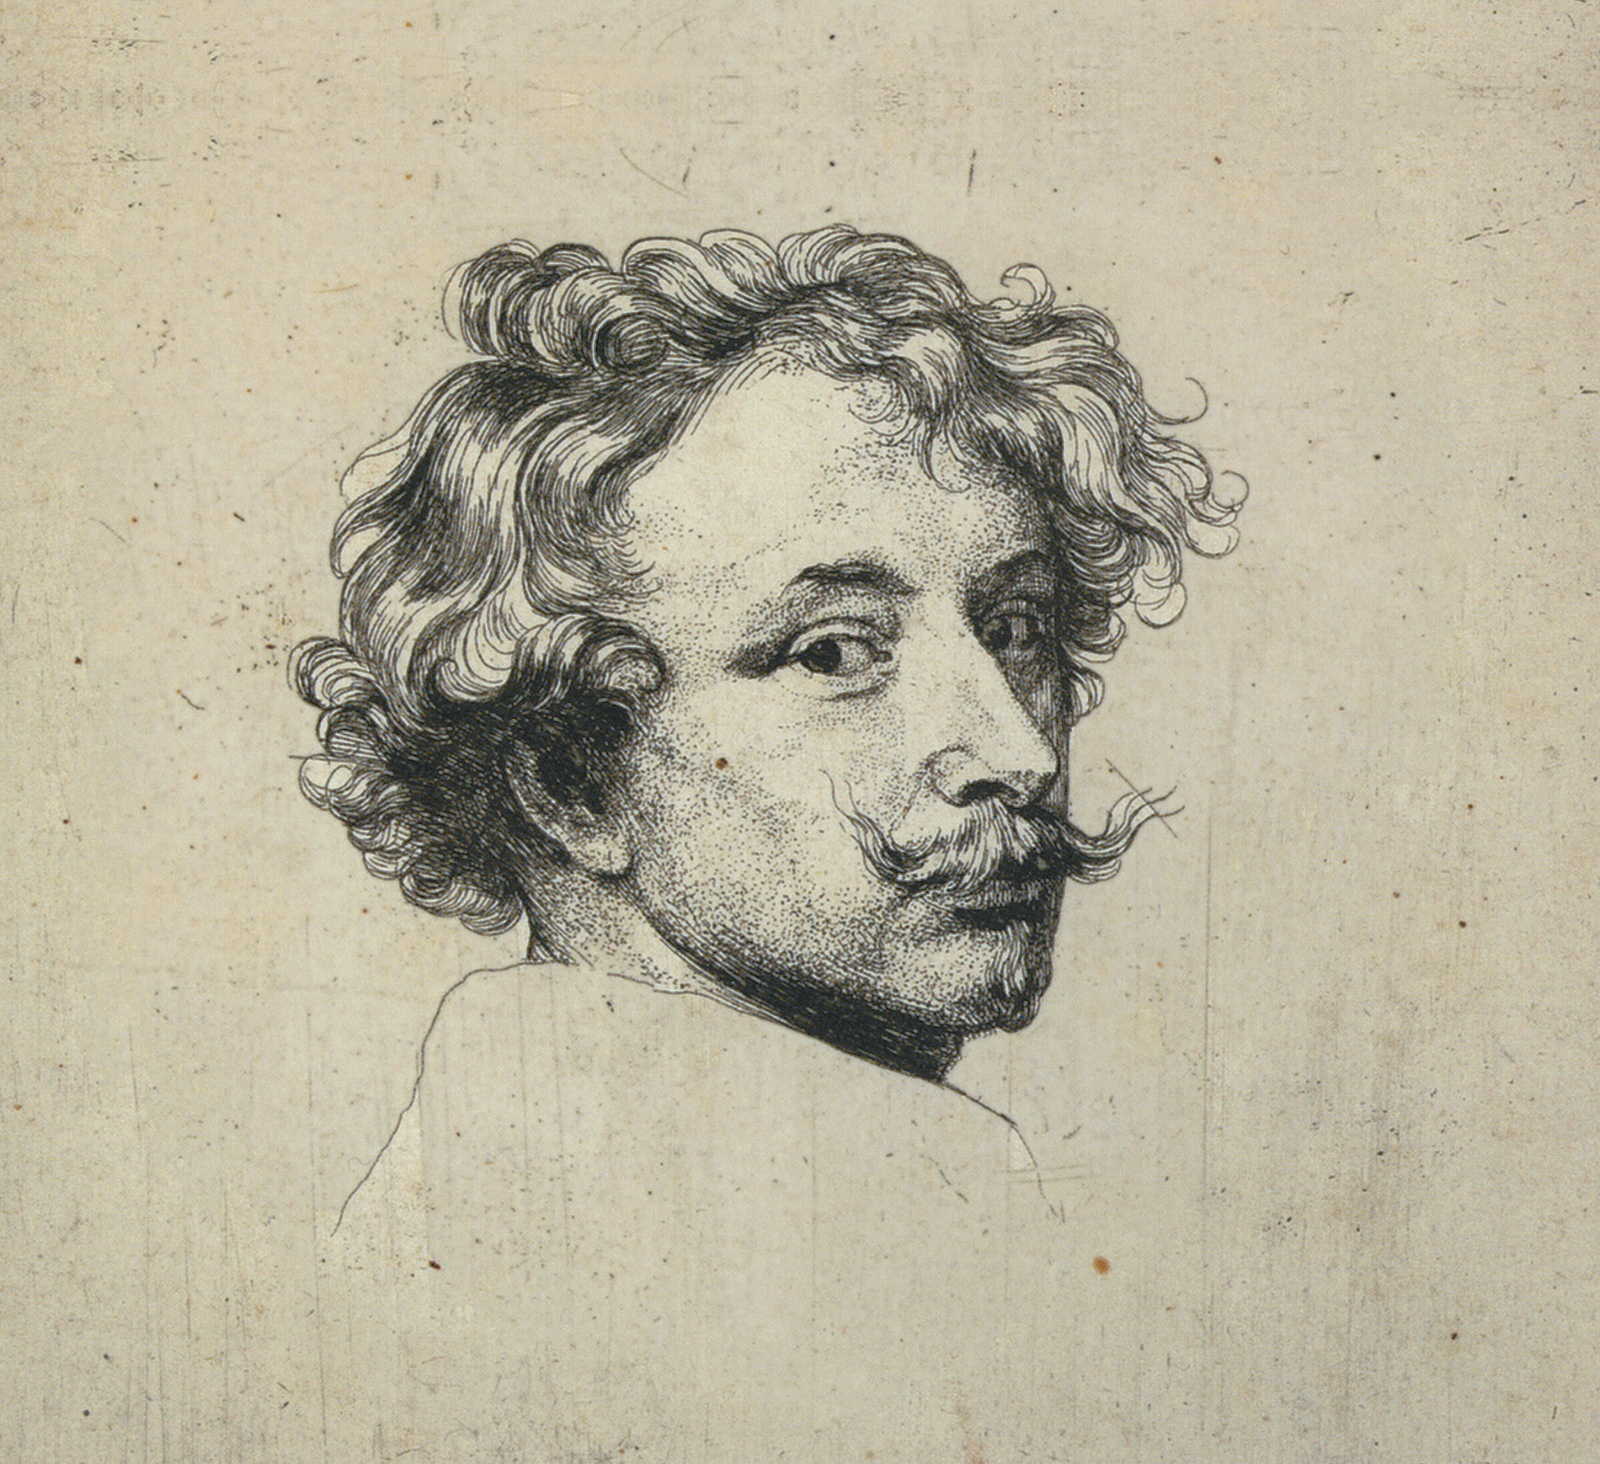 Van Dyck: 'The Great Power of Execution' | by James Fenton ...